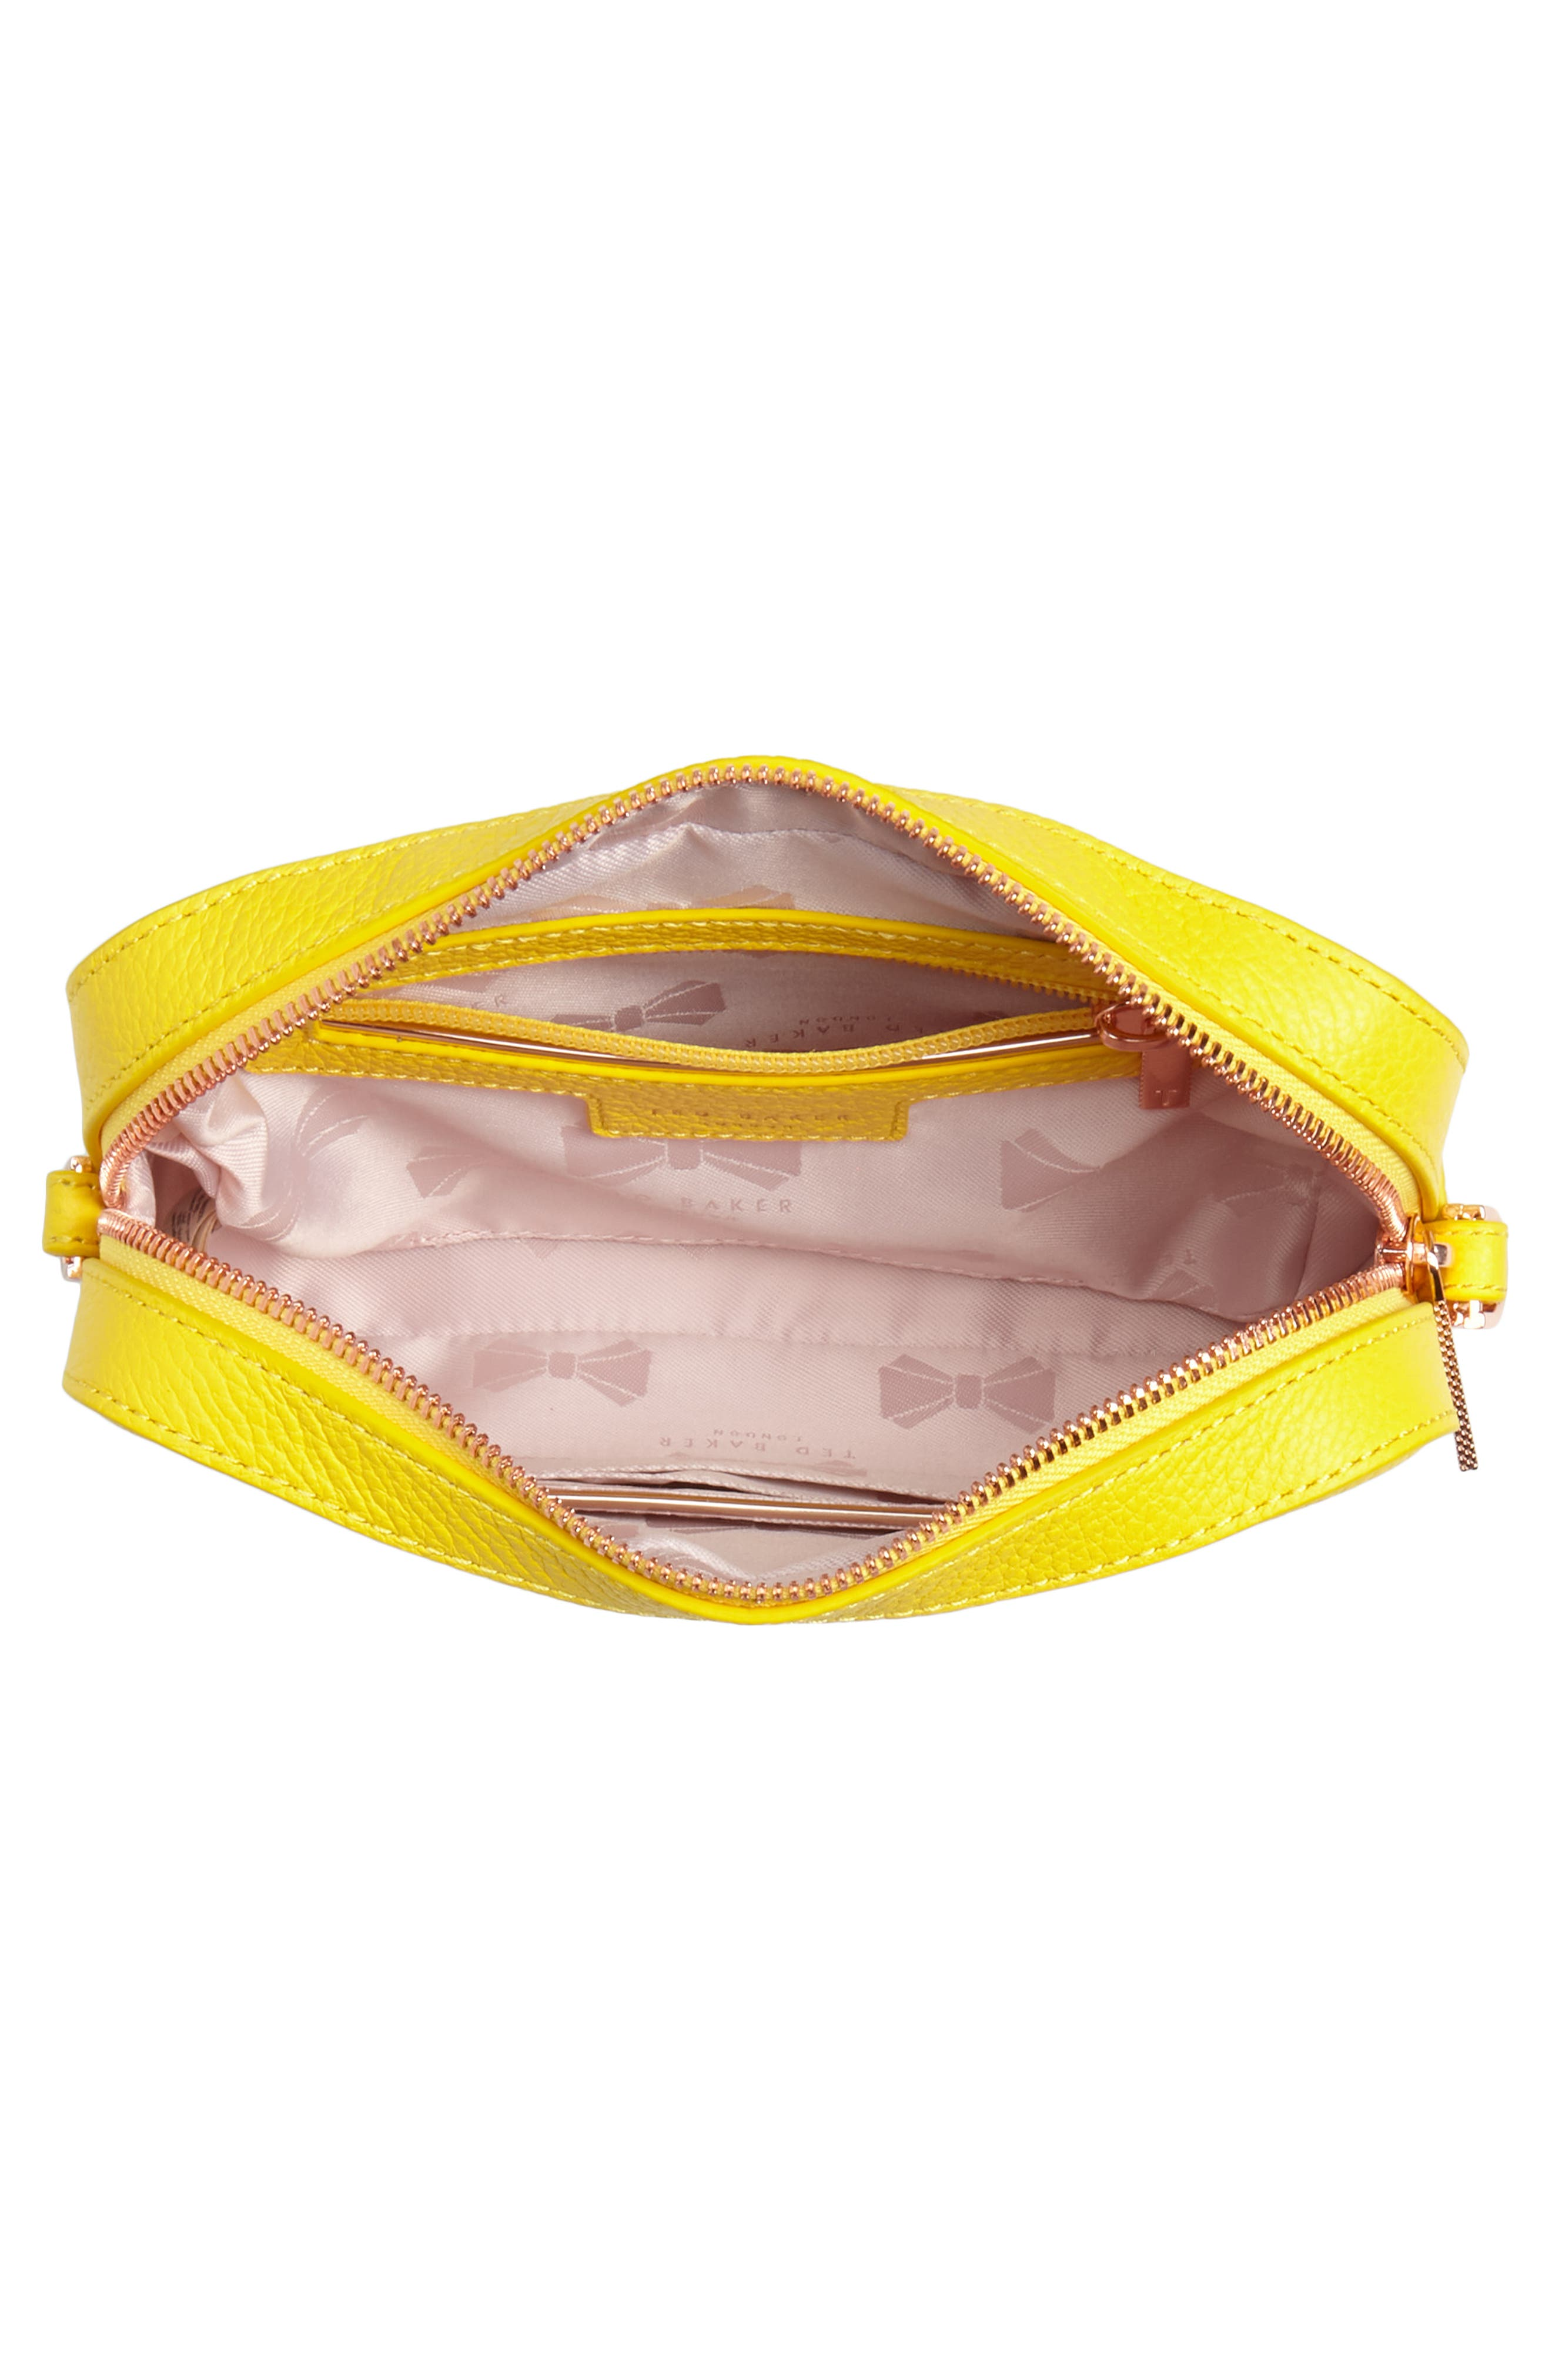 Salia Leather Camera Bag,                             Alternate thumbnail 8, color,